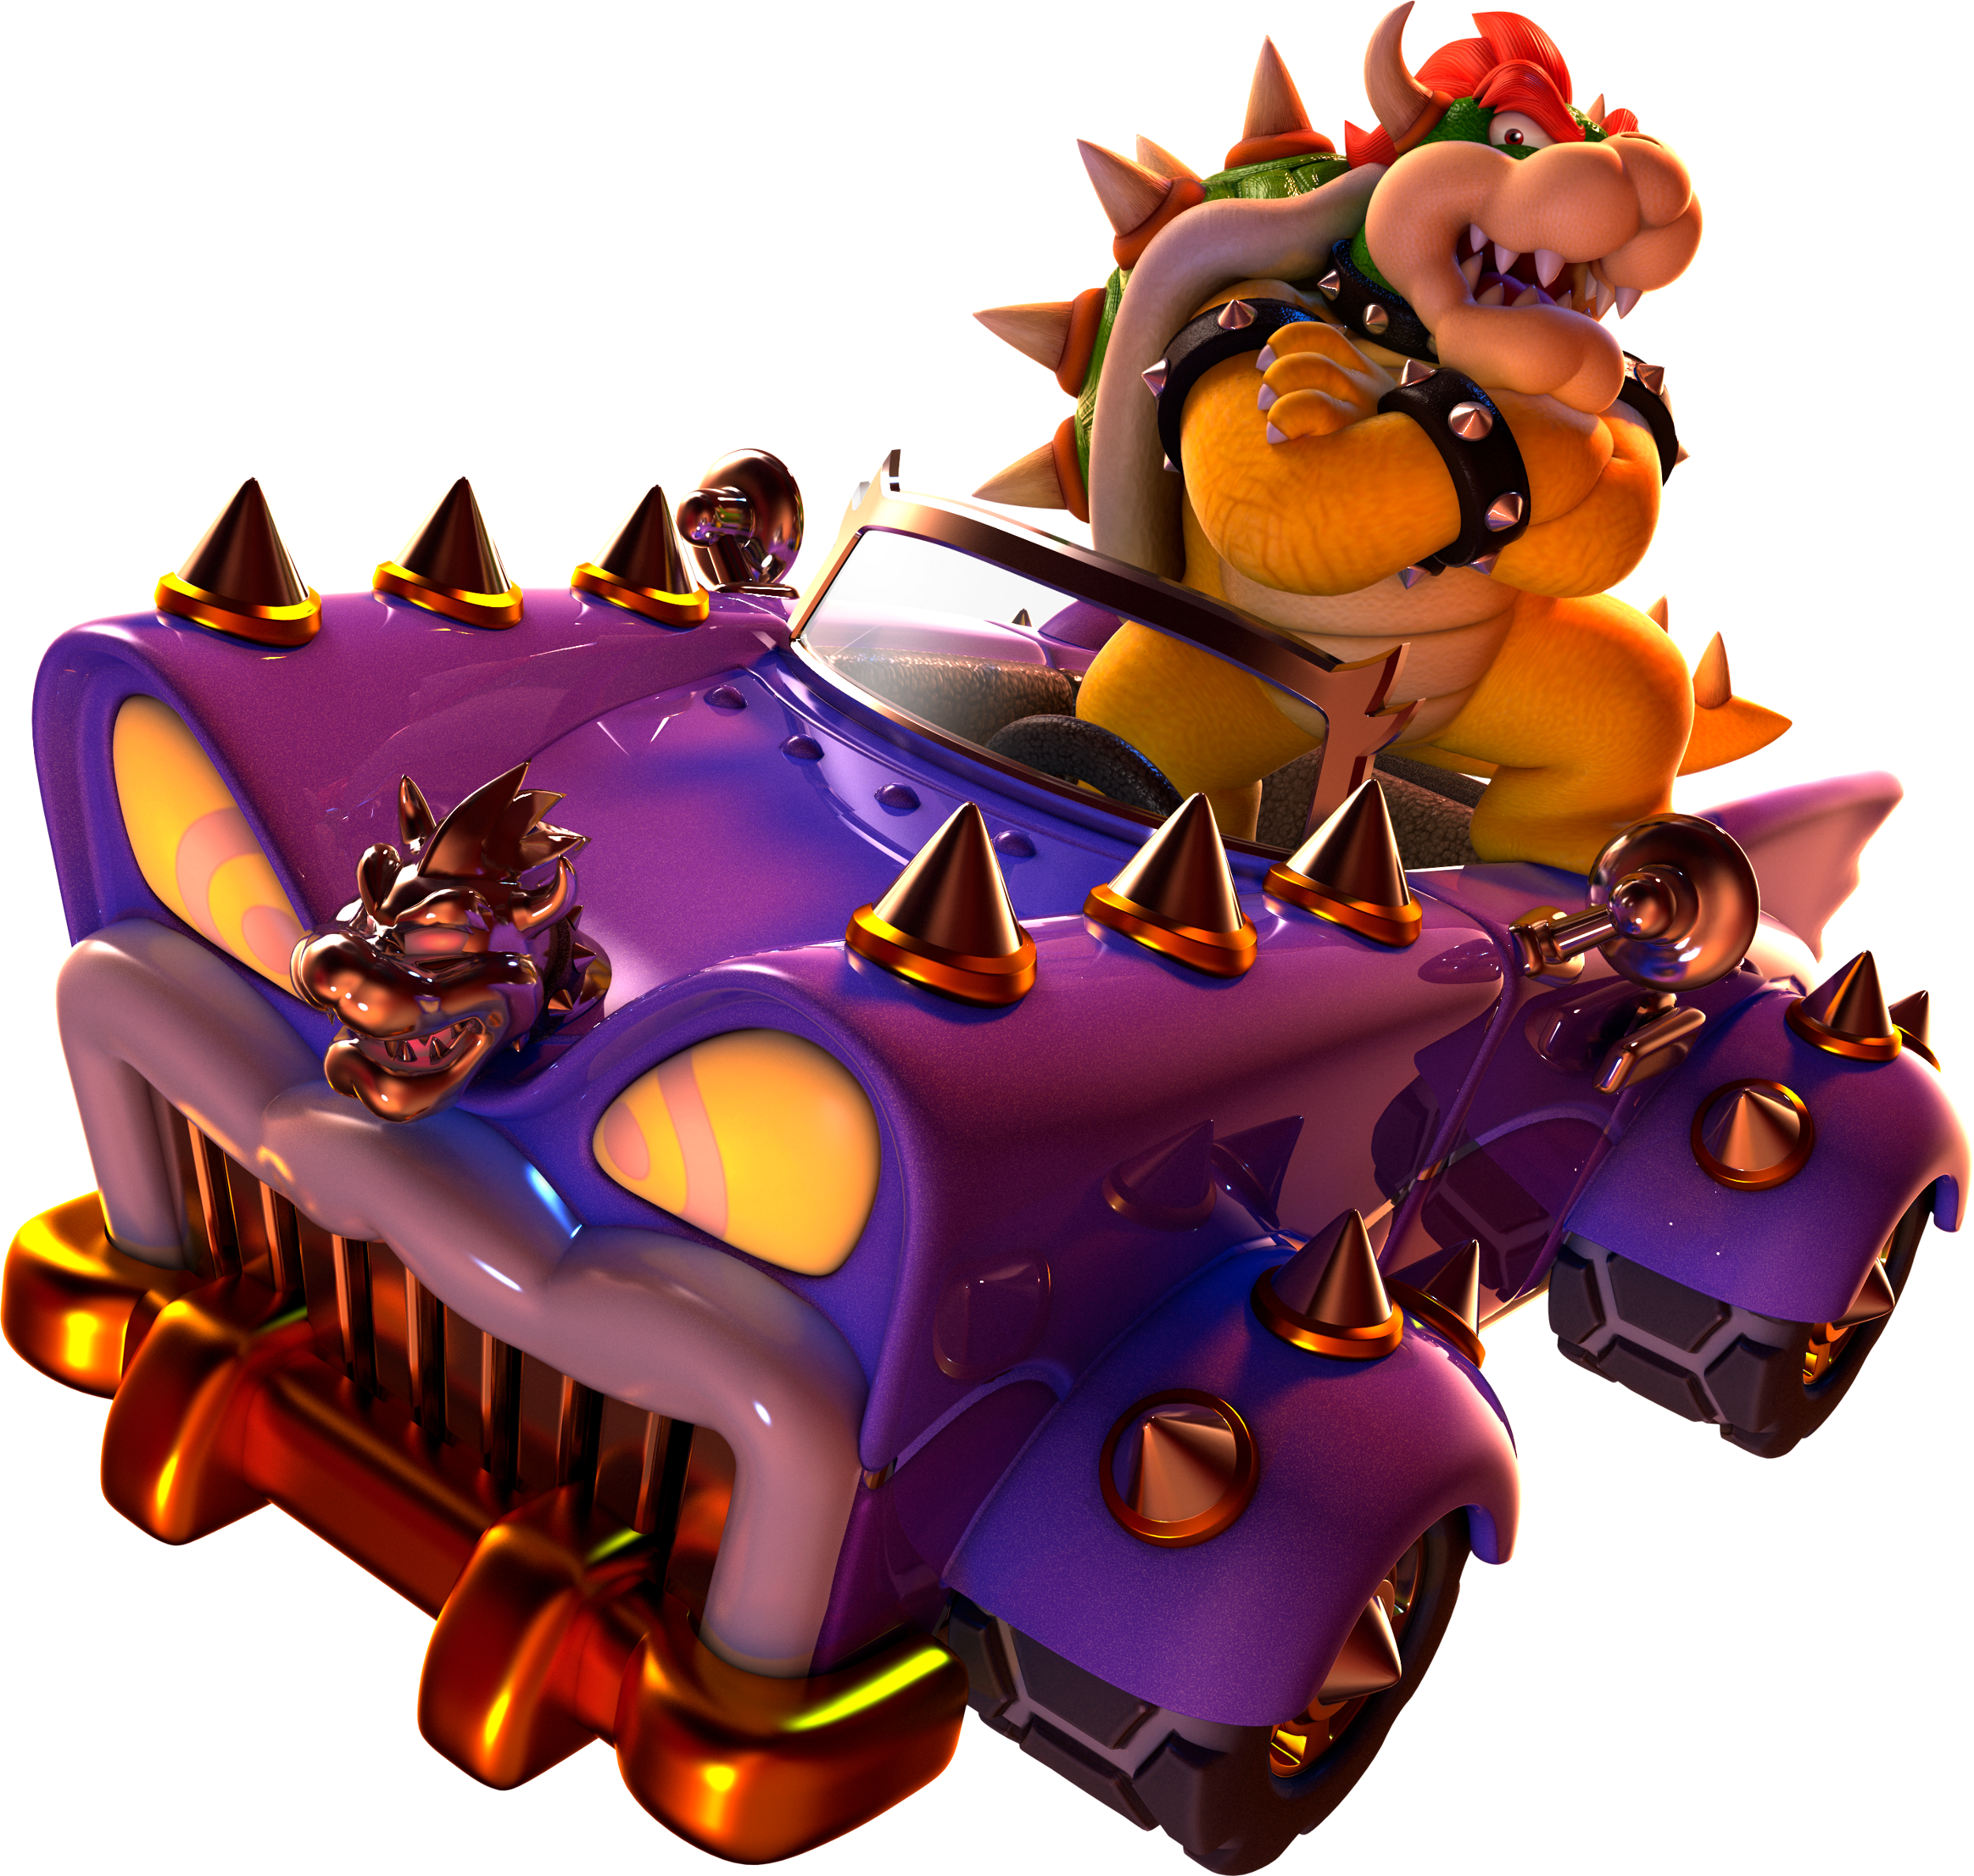 Bowser (Super Mario 3D World)